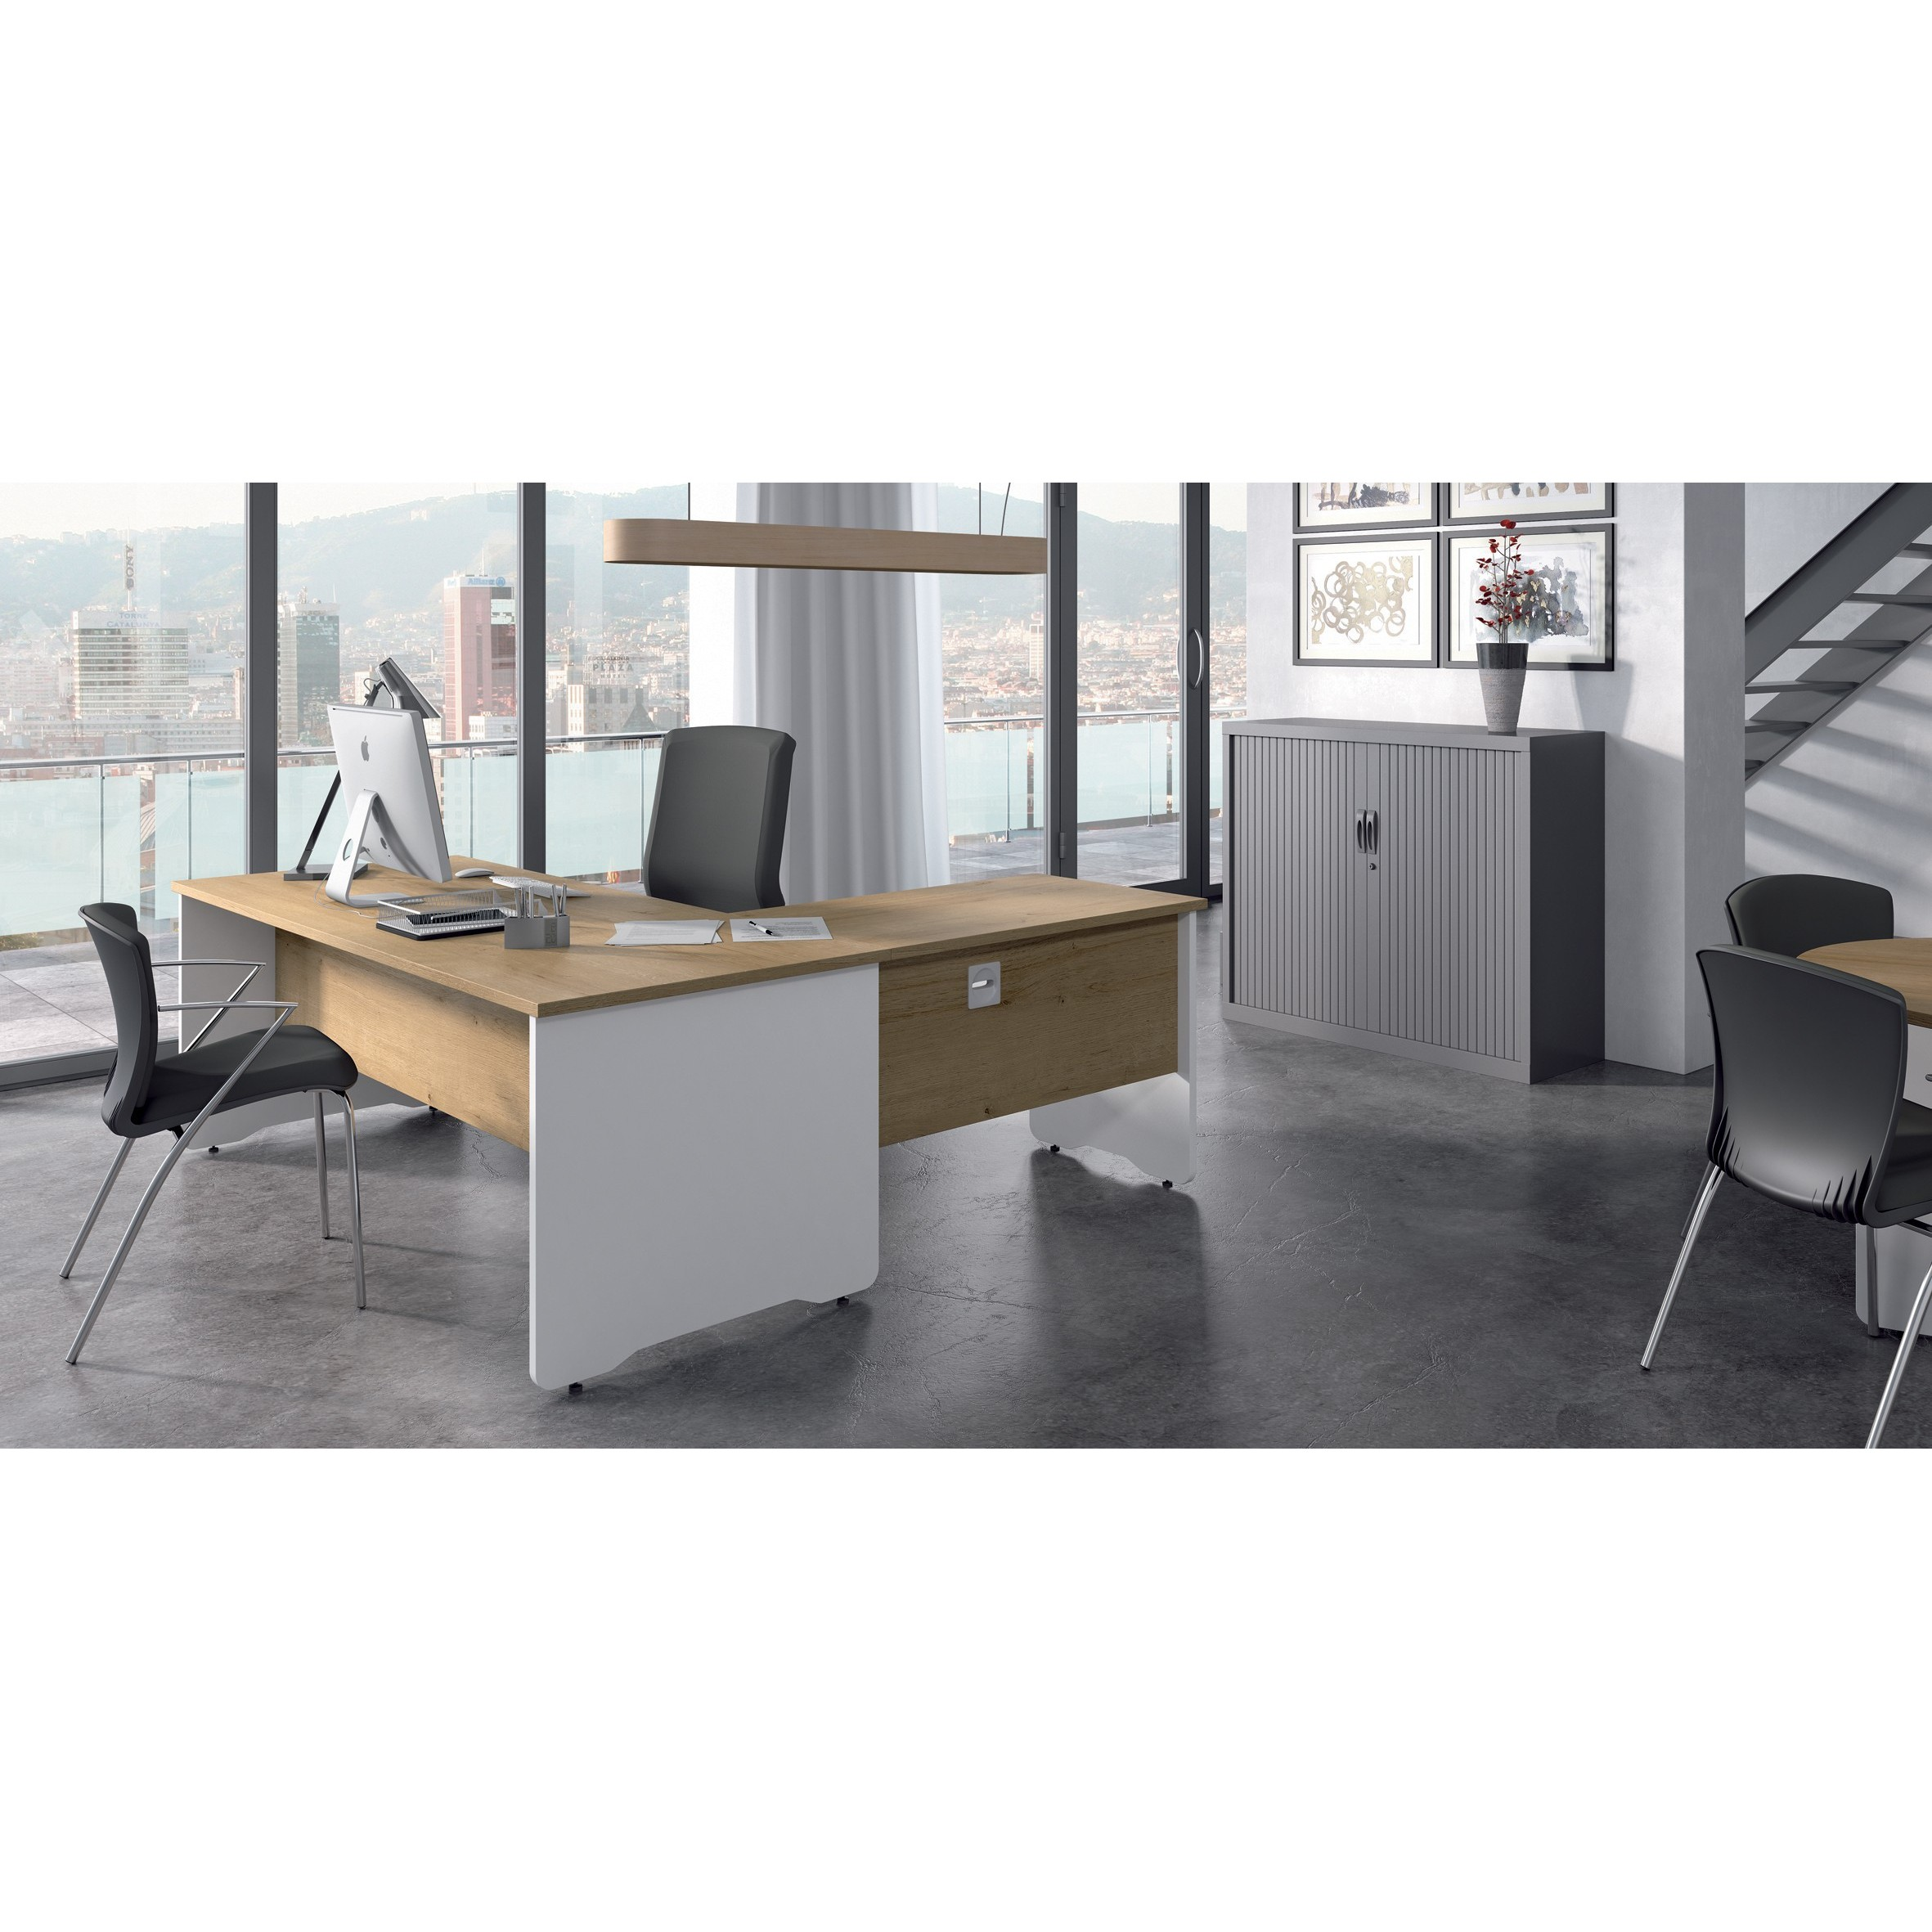 TABLE OFFICE 'S WORK WITH SHAPE SERIES L LEFT 160X120 WHITE/GREY